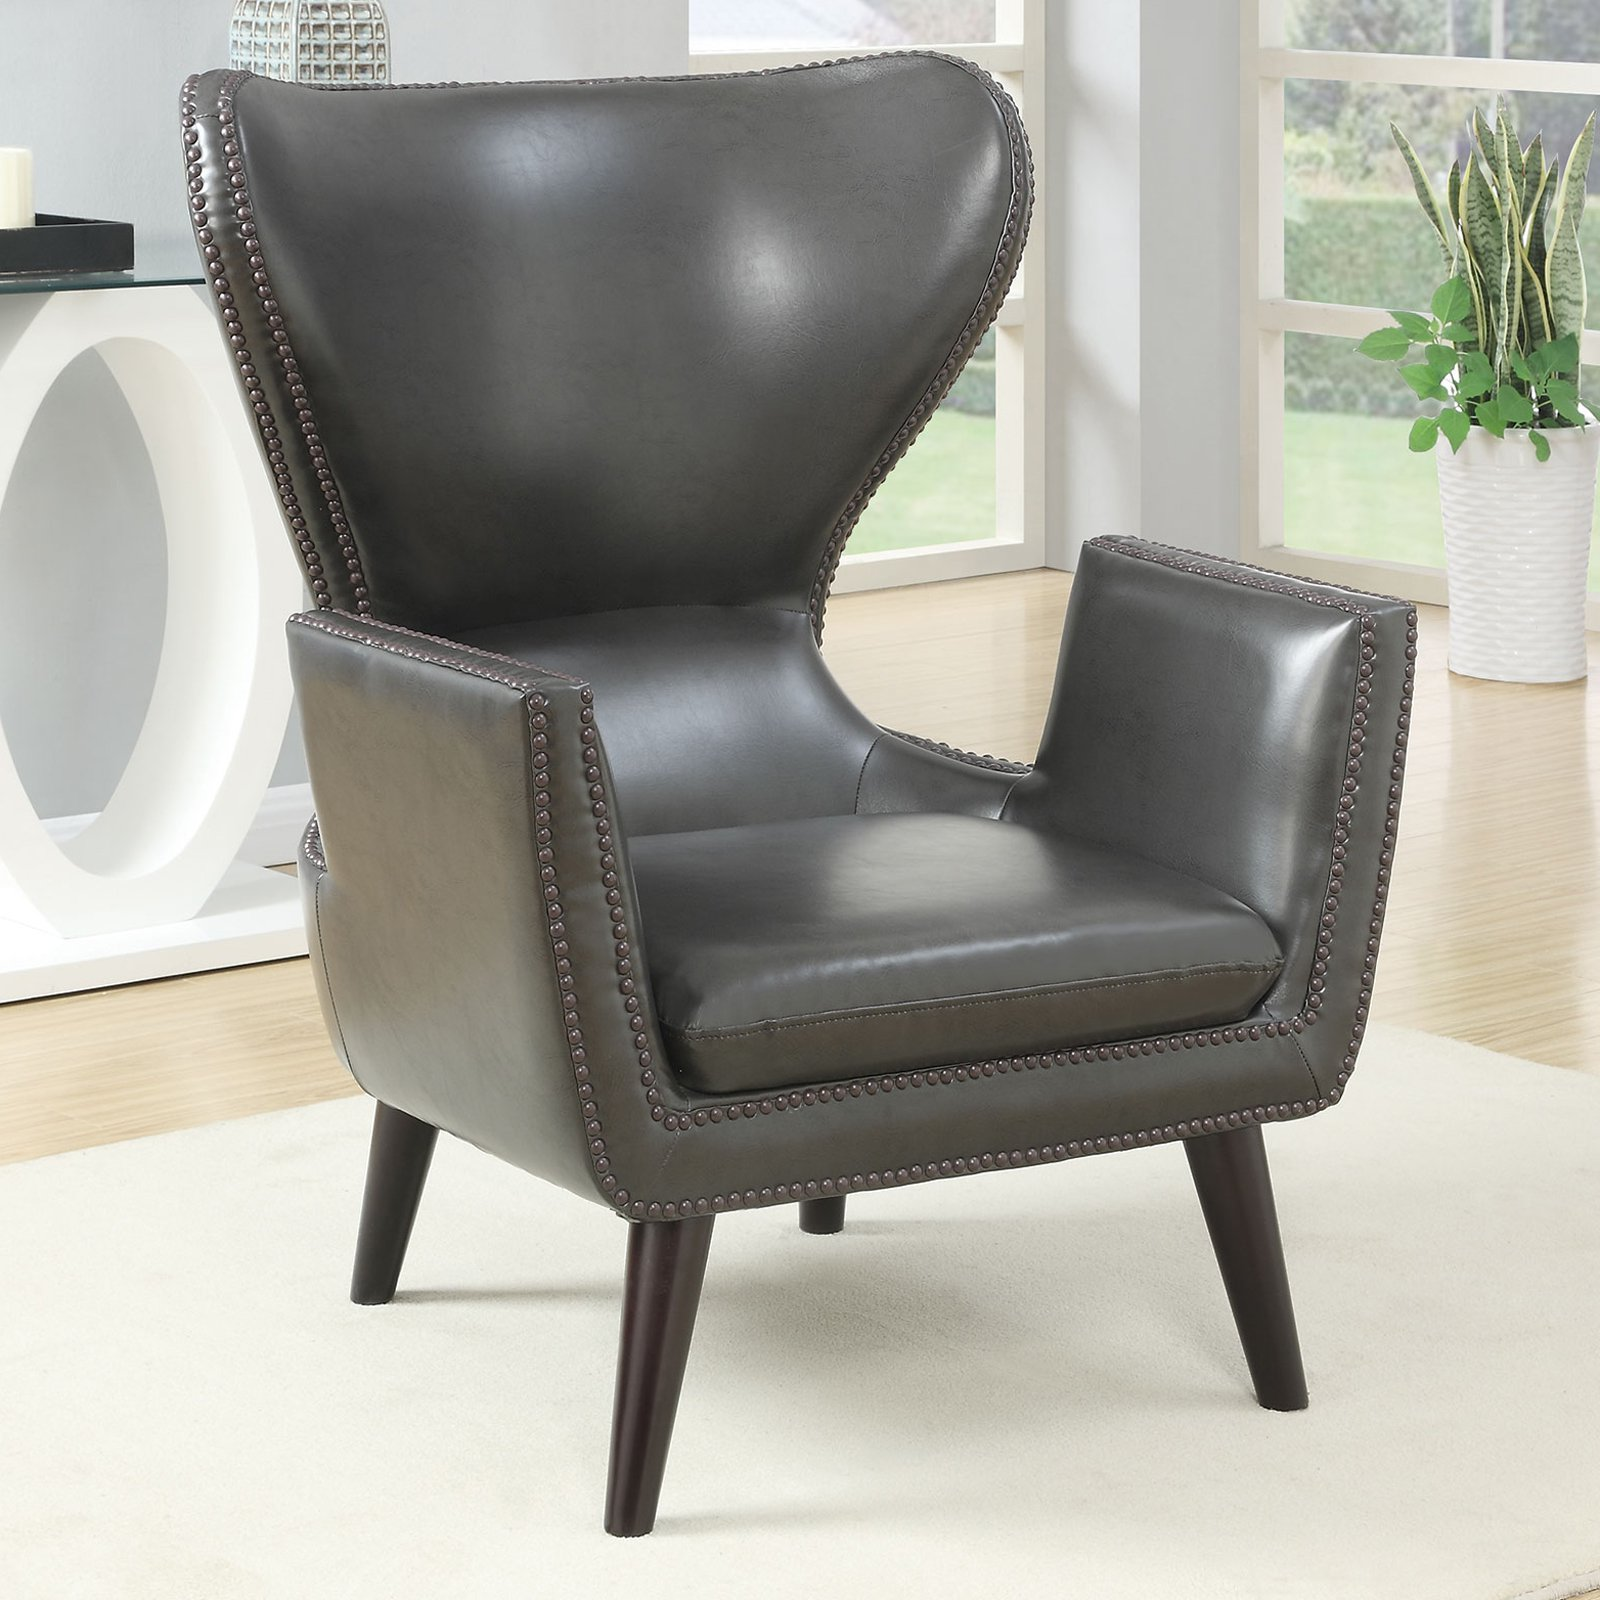 Coaster Company Accent Chair, Charcoal Leatherette, Dark Brown